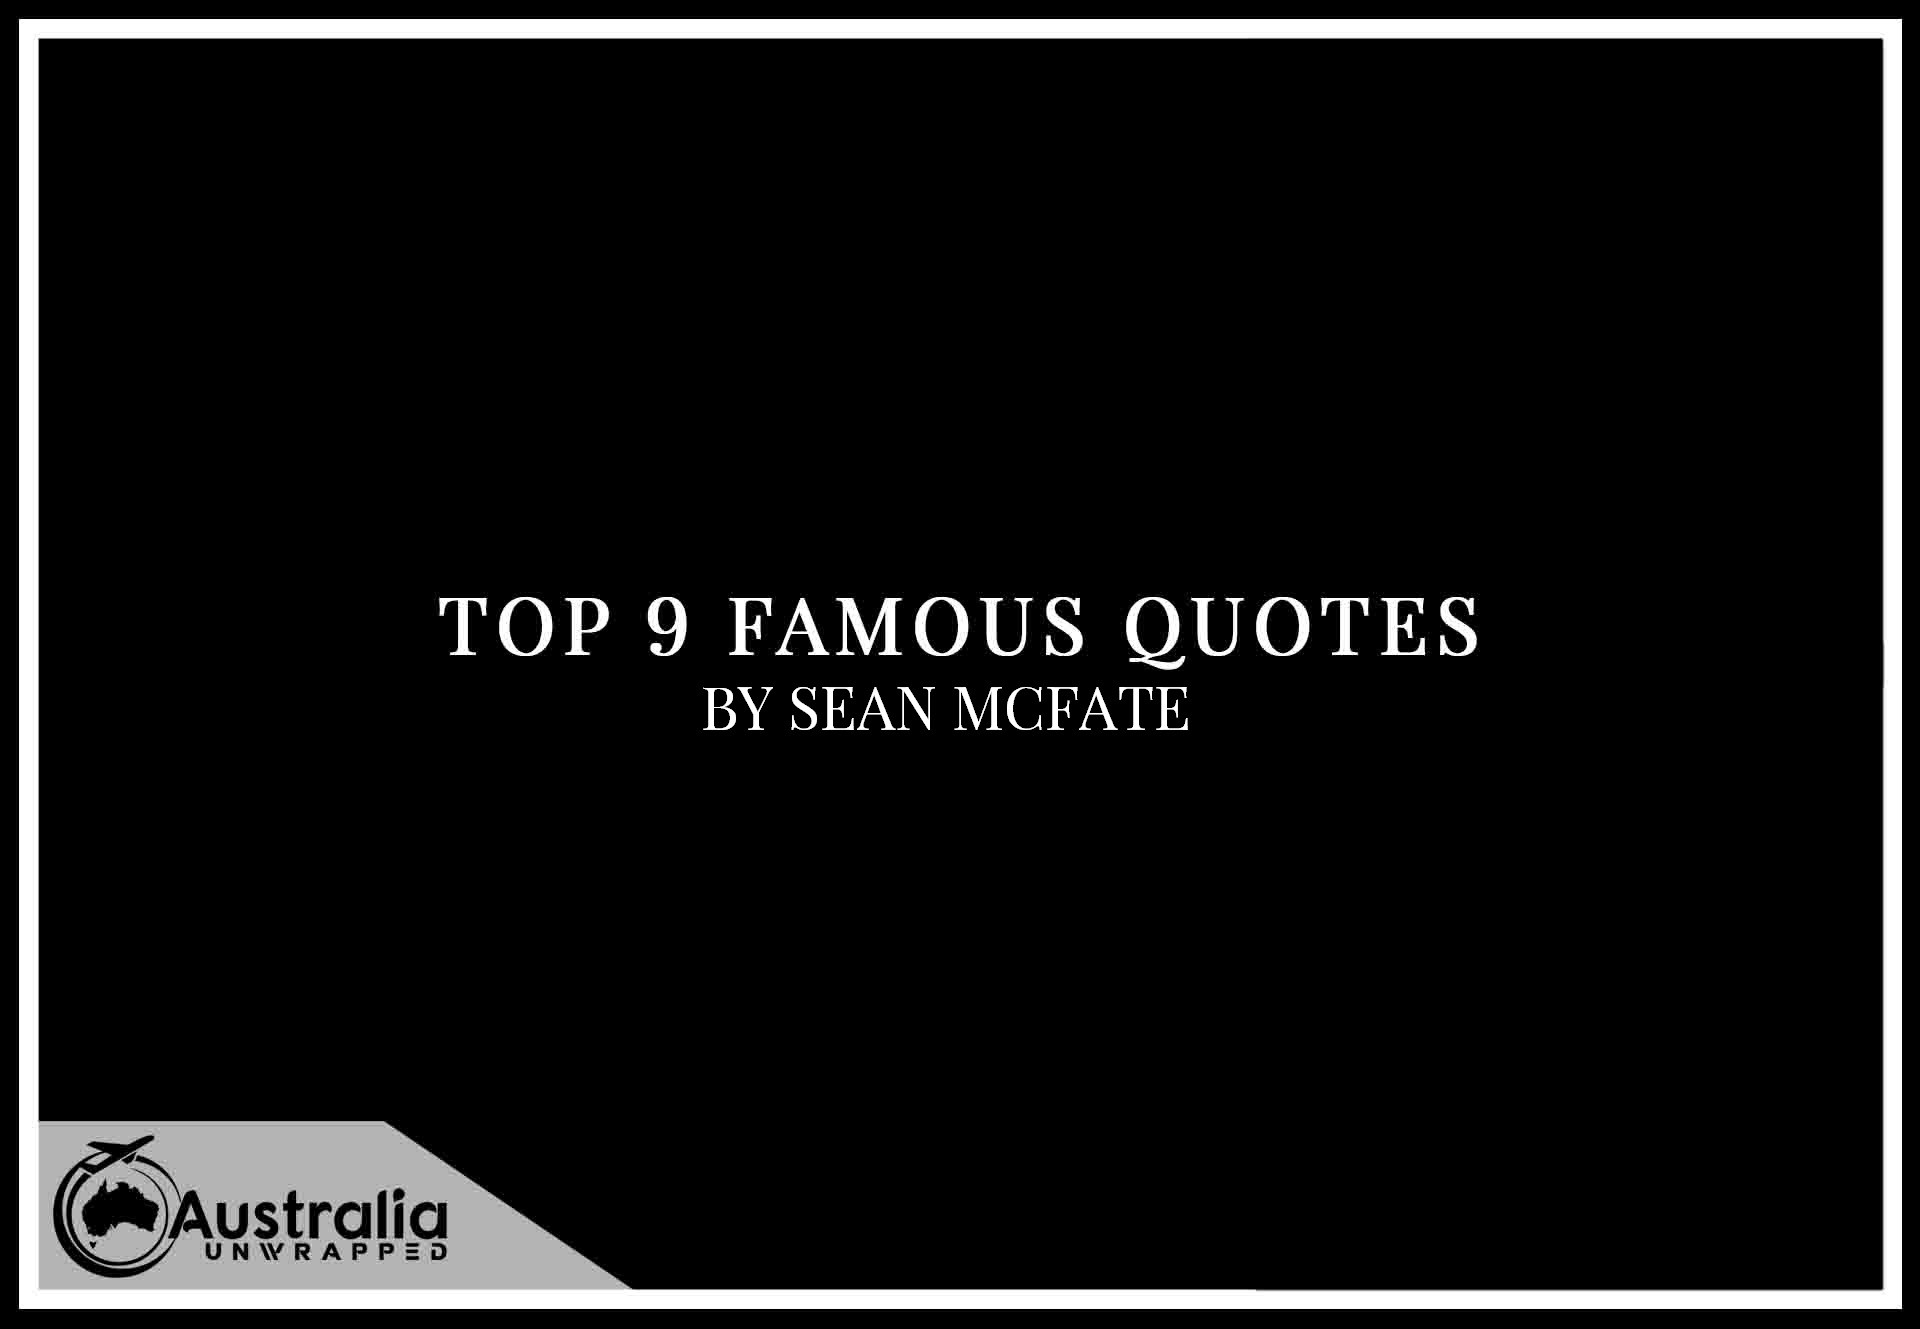 Top 9 Famous Quotes by Author Sean McFate